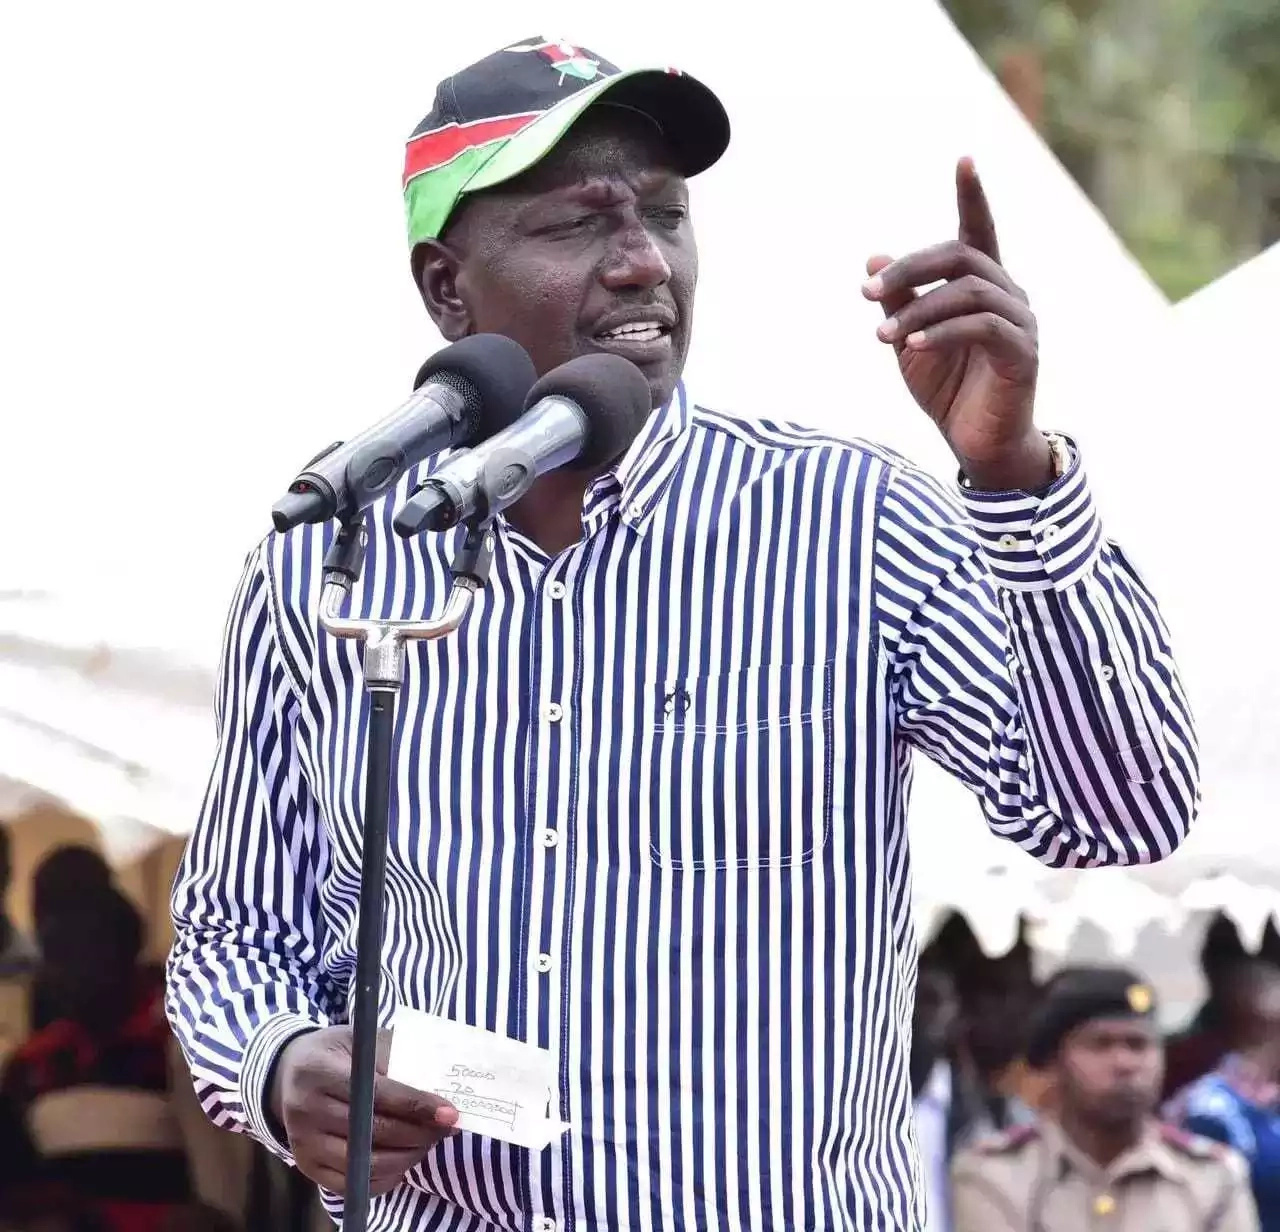 William Ruto's shoot to kill order defied by the Pokot community, they offer 'better' solution